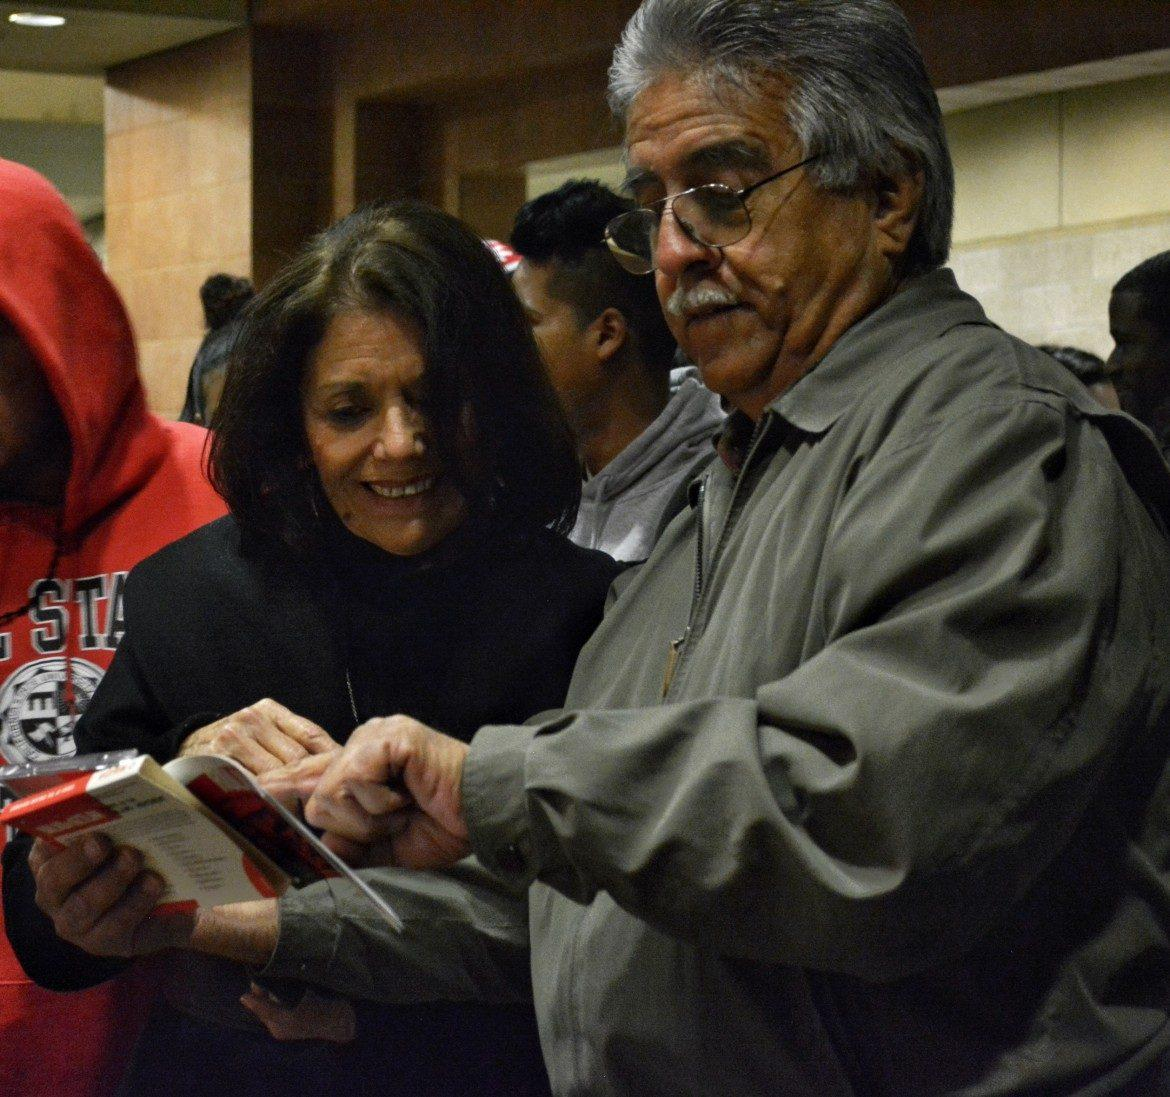 Shiva Parsa (left), Associate Director of EOP, and Veto Ruiz (right), a Chicano studies professor, sharing memories of Vargas on March 31, 2016. Photo credit: Patricia Perdomo